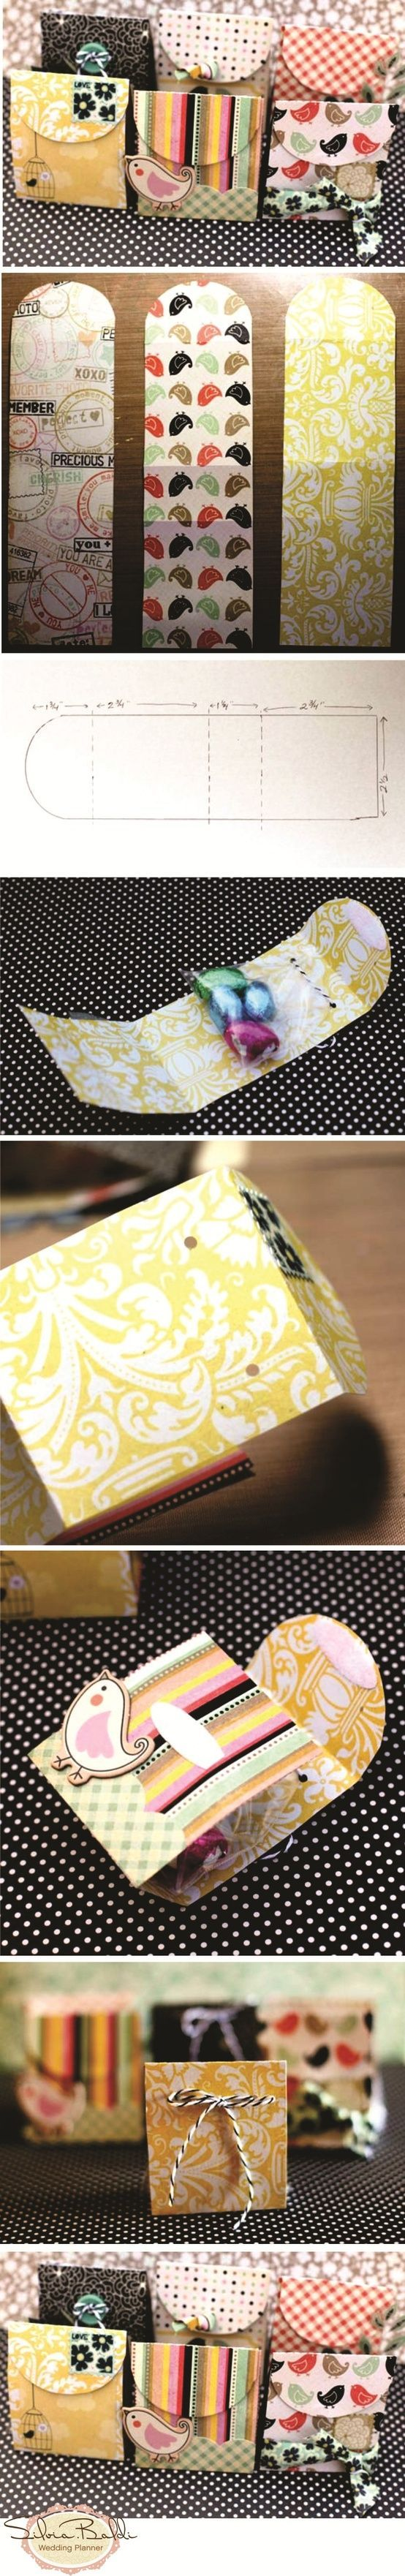 180 best emballagesboitesenveloppes images on pinterest diy gift boxes do it yourself pins solutioingenieria Images